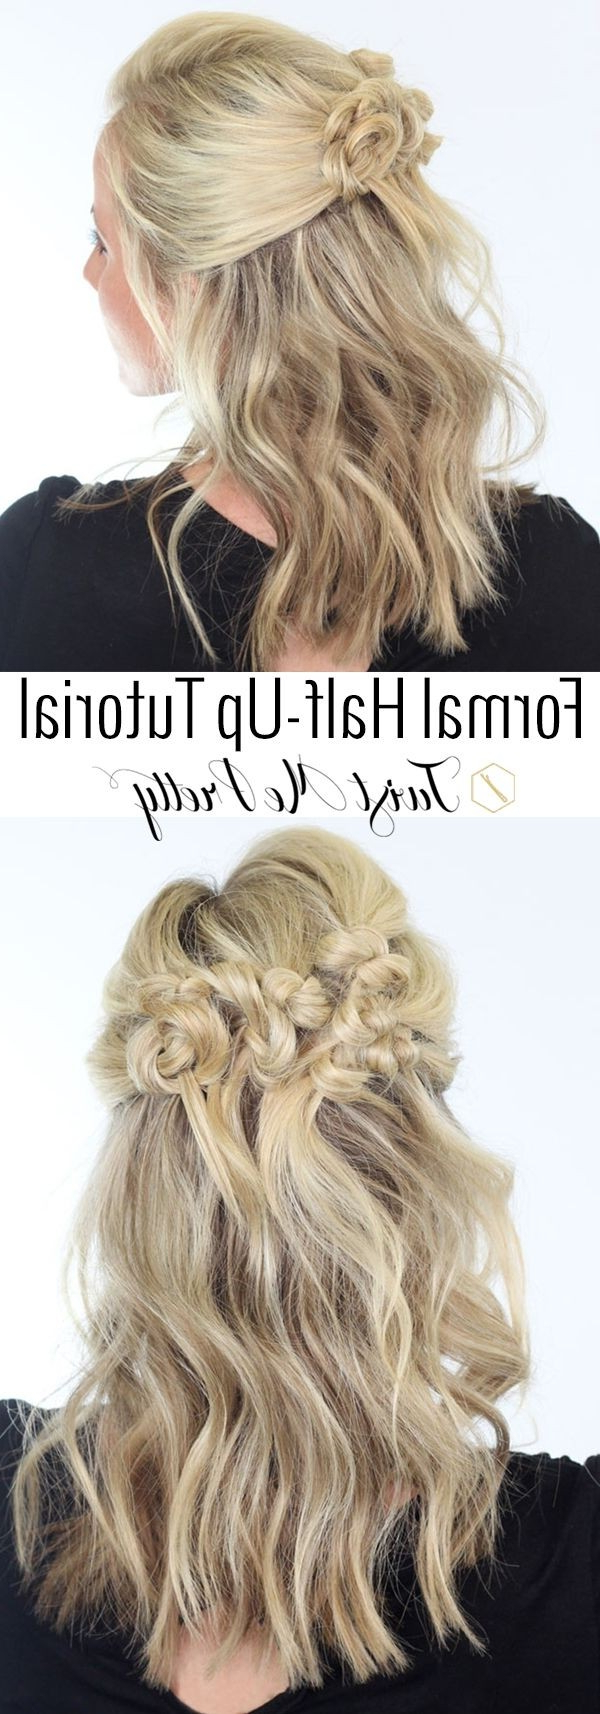 18 Shoulder Length Layered Hairstyles In Most Up To Date Half Long Half Medium Hairstyles (View 11 of 20)